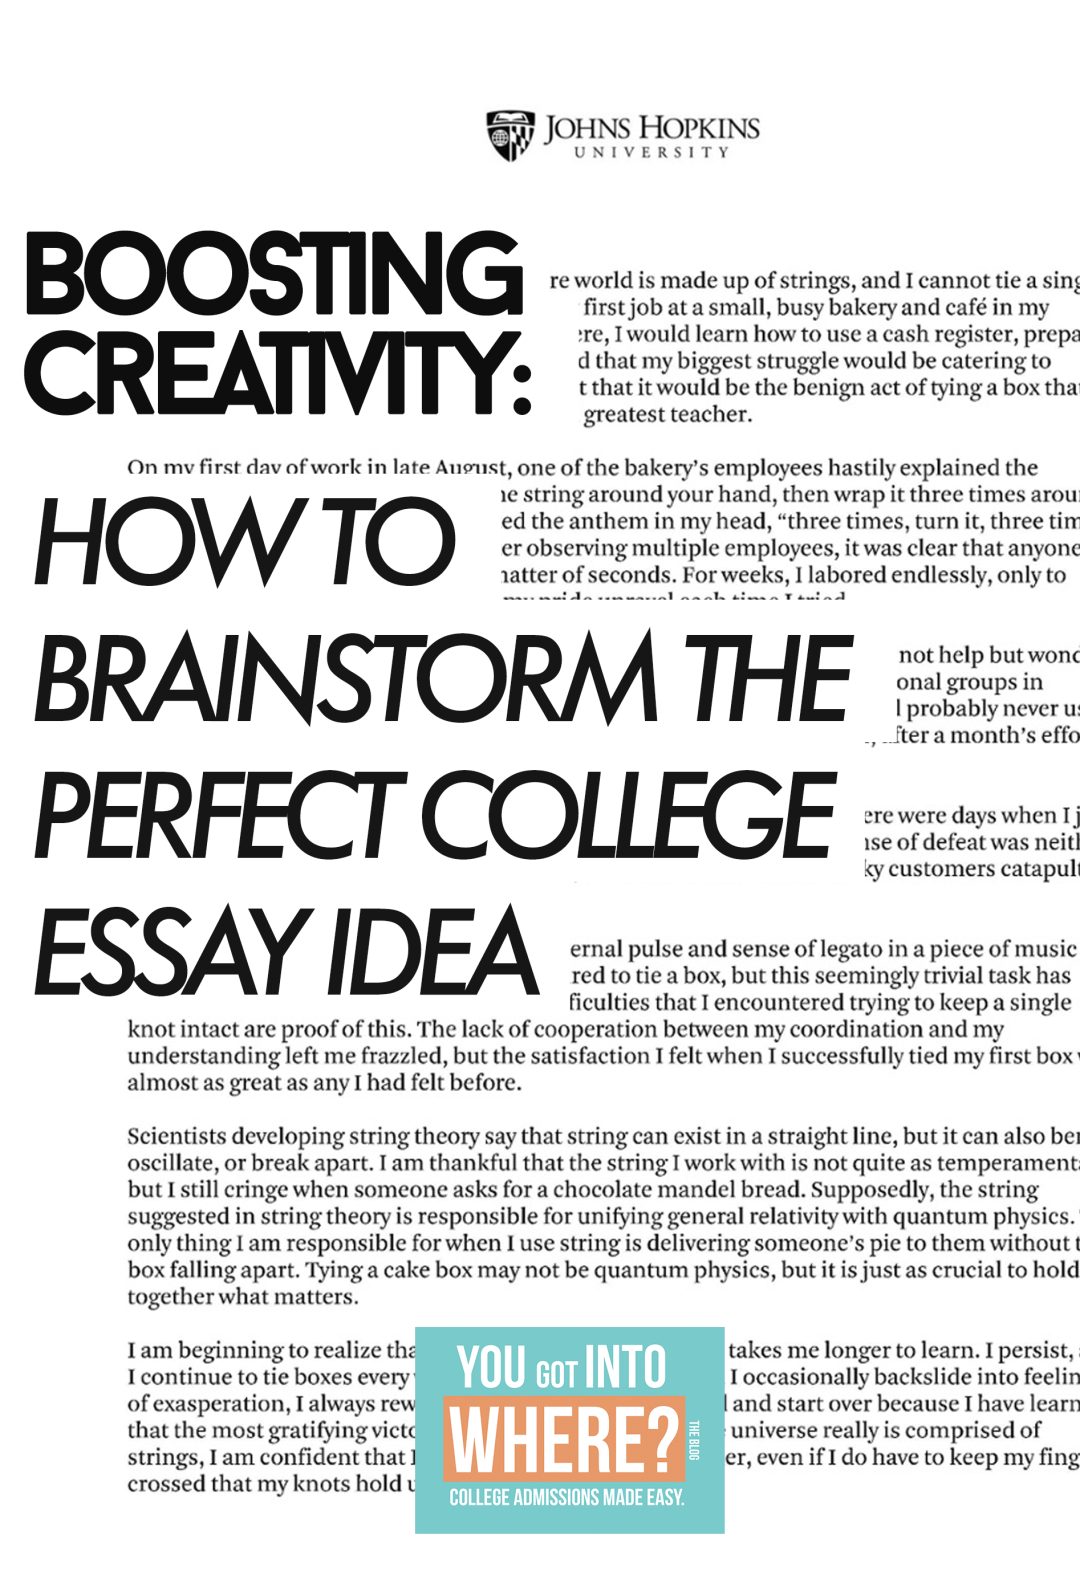 anthem essays anthem press economics academic professional general  essays supplements you got into where 5 effective steps to brainstorm the perfect college essay